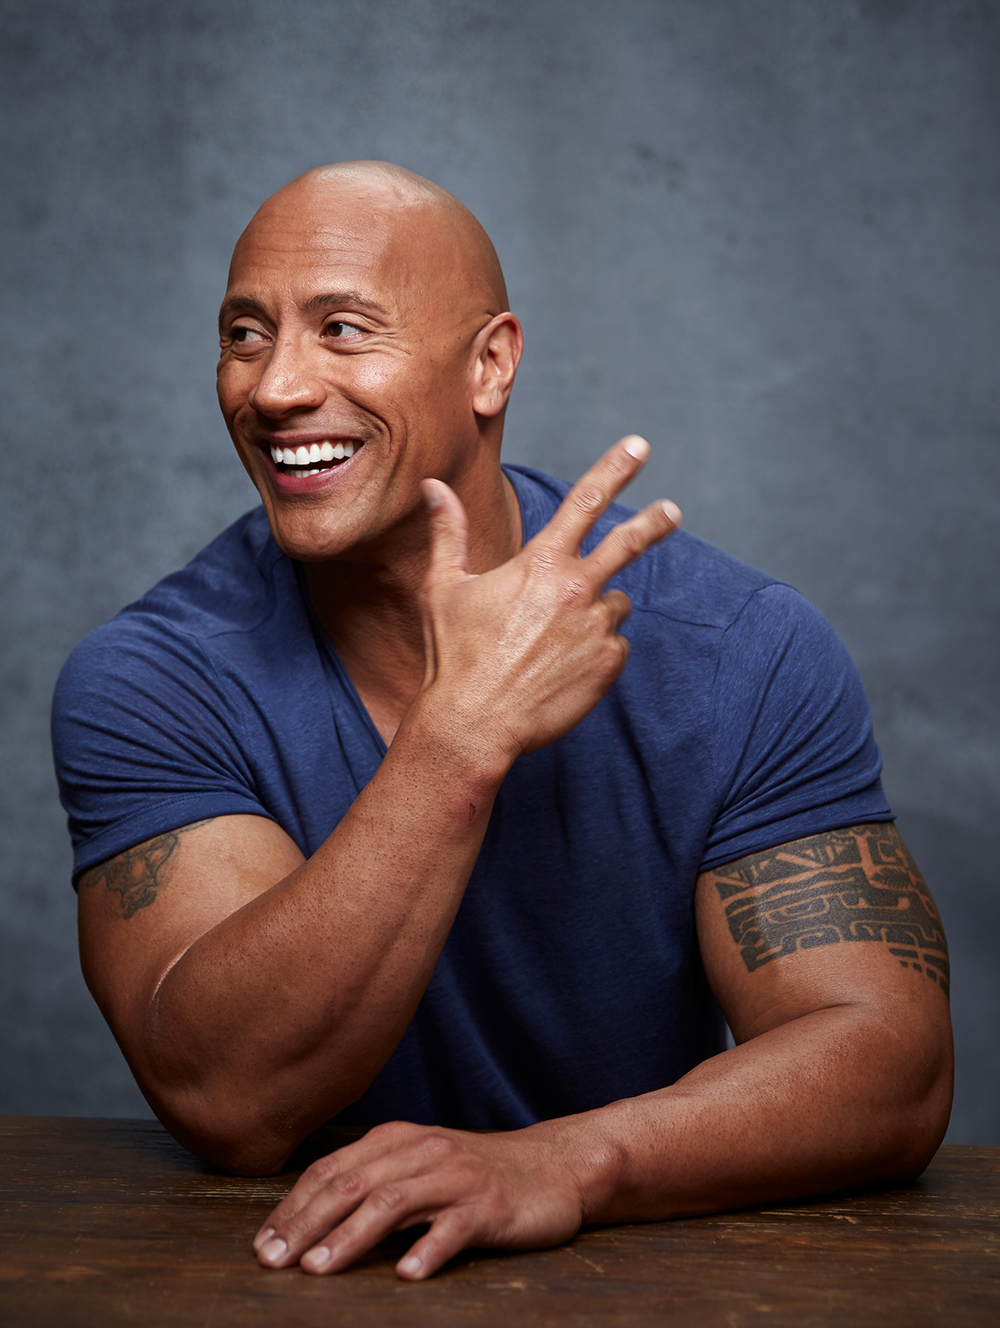 Dwayne_Feb2017_0151.jpg